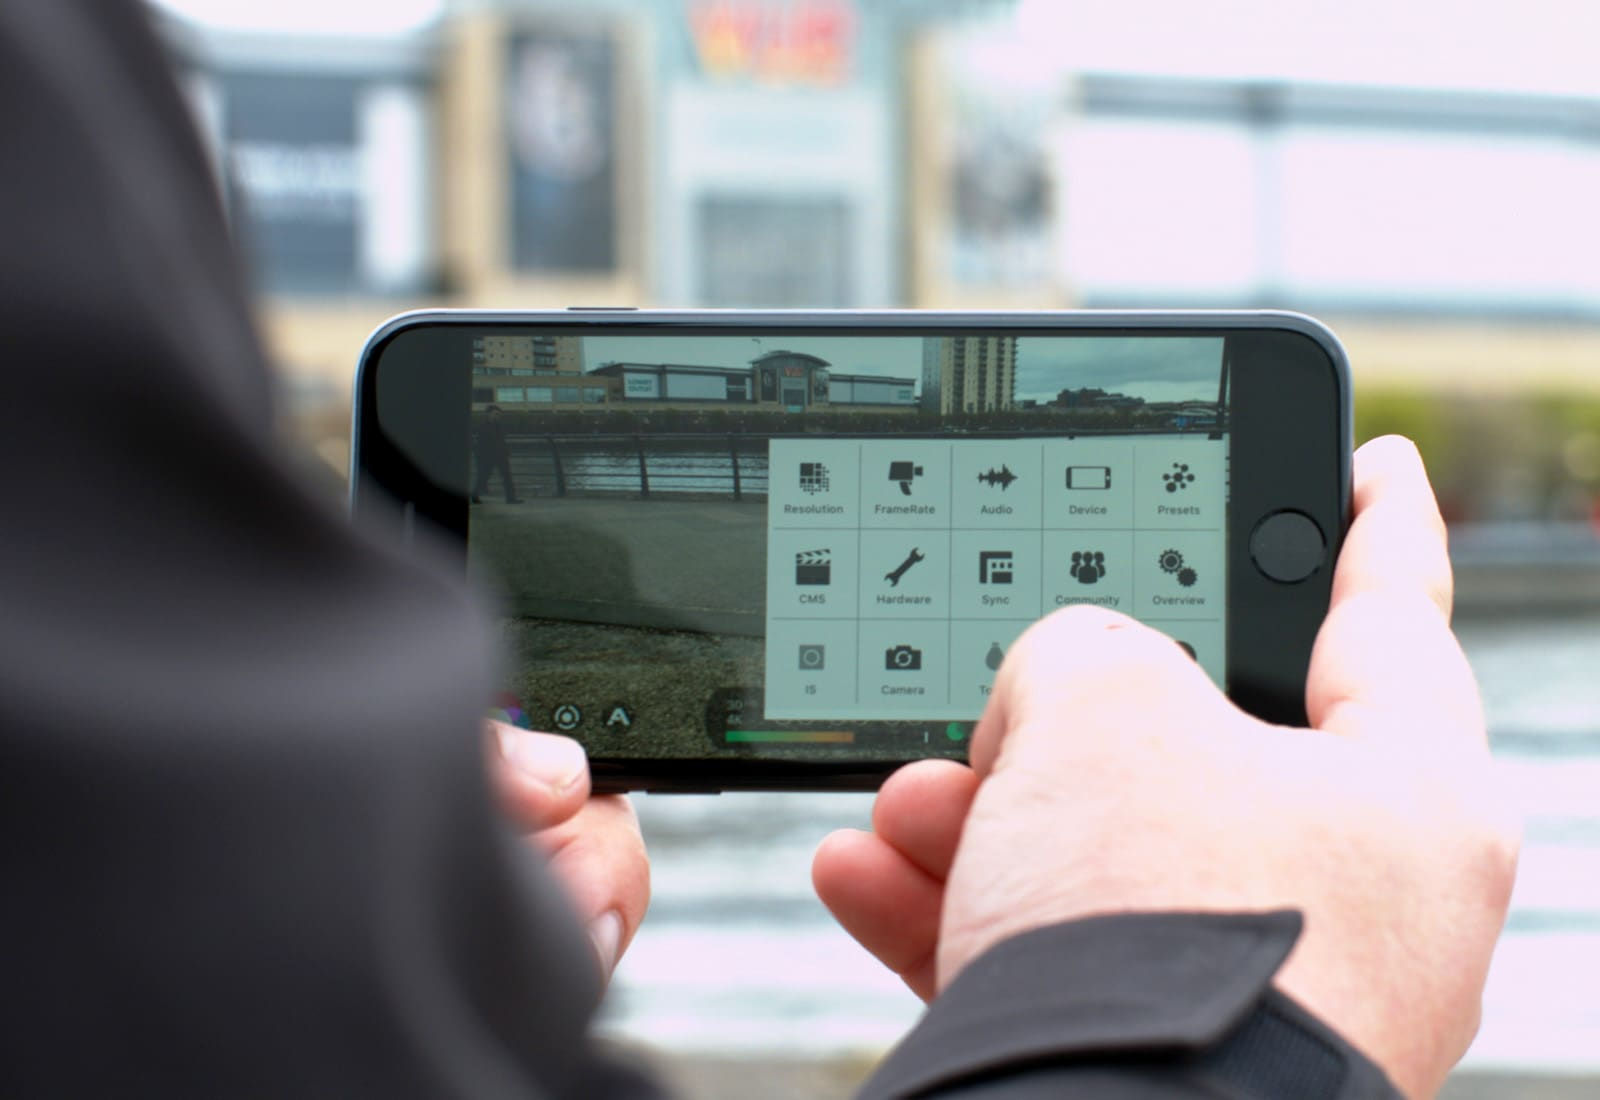 iPhone video tips: How to shoot iPhone video like a pro | Cult of Mac